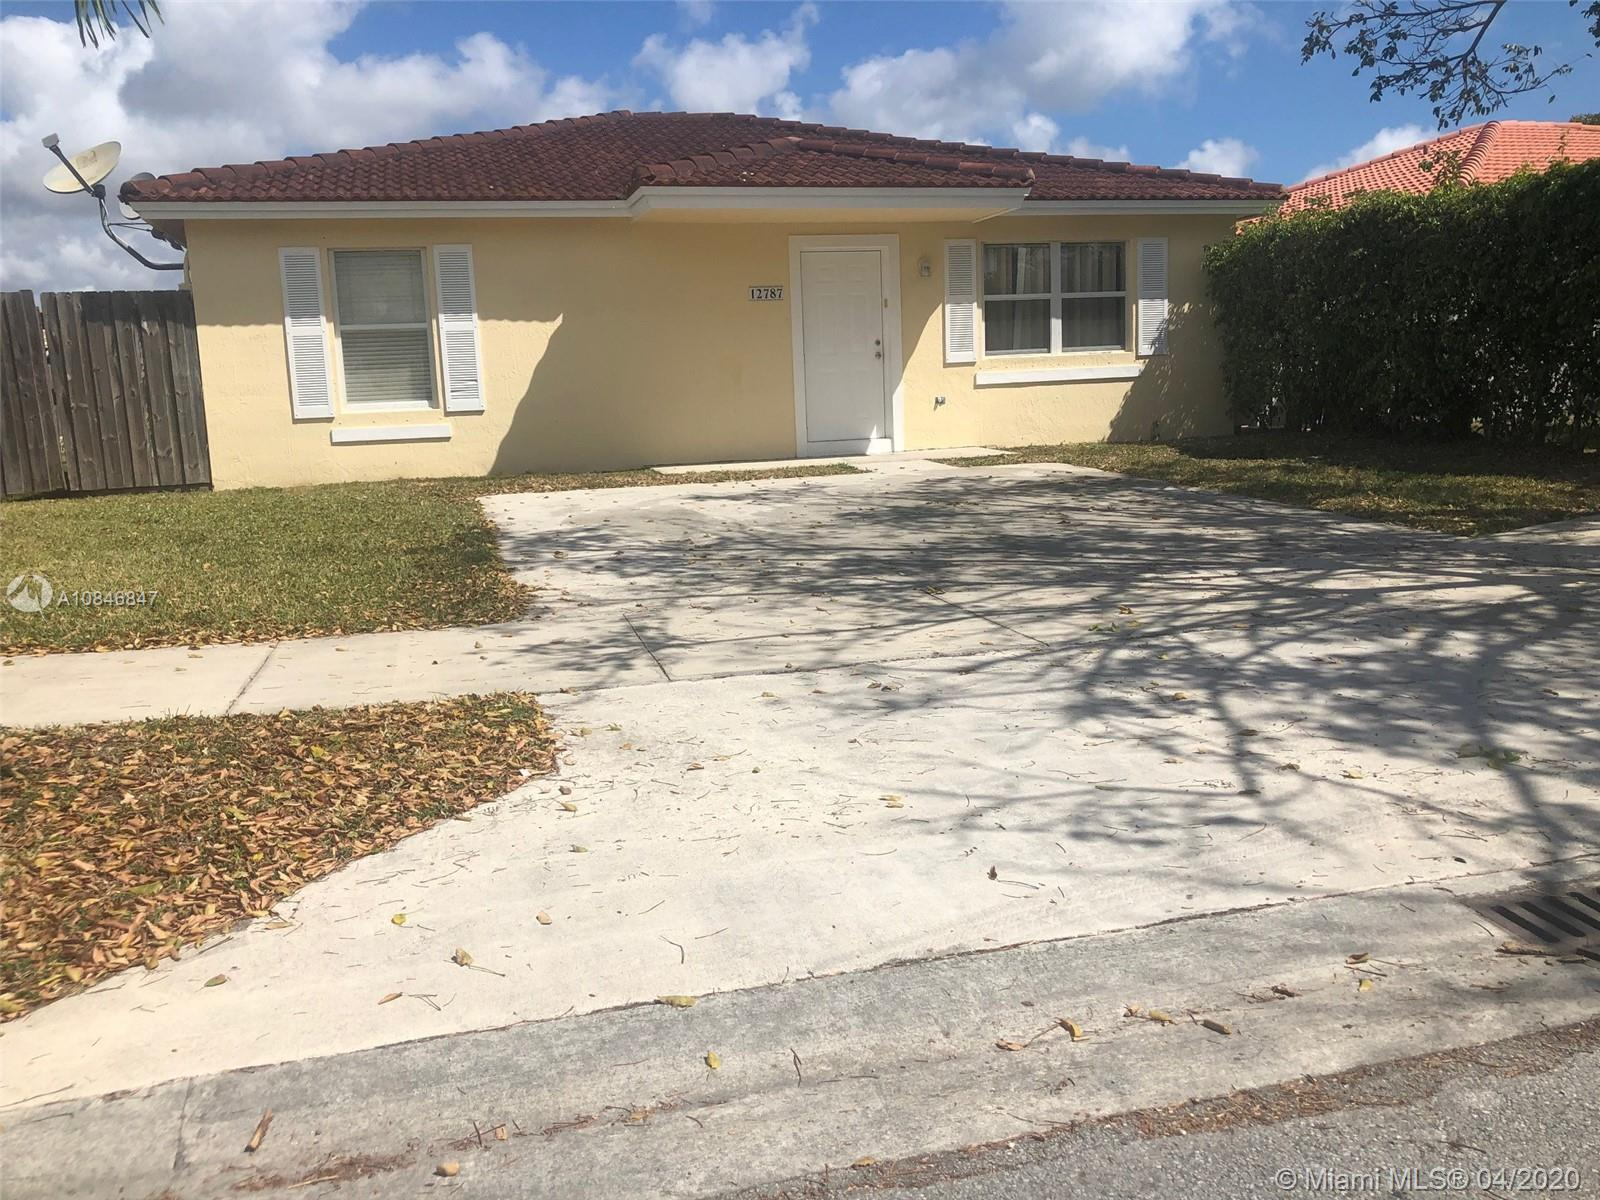 12787 SW 257th St, Homestead, FL 33032 - Homestead, FL real estate listing